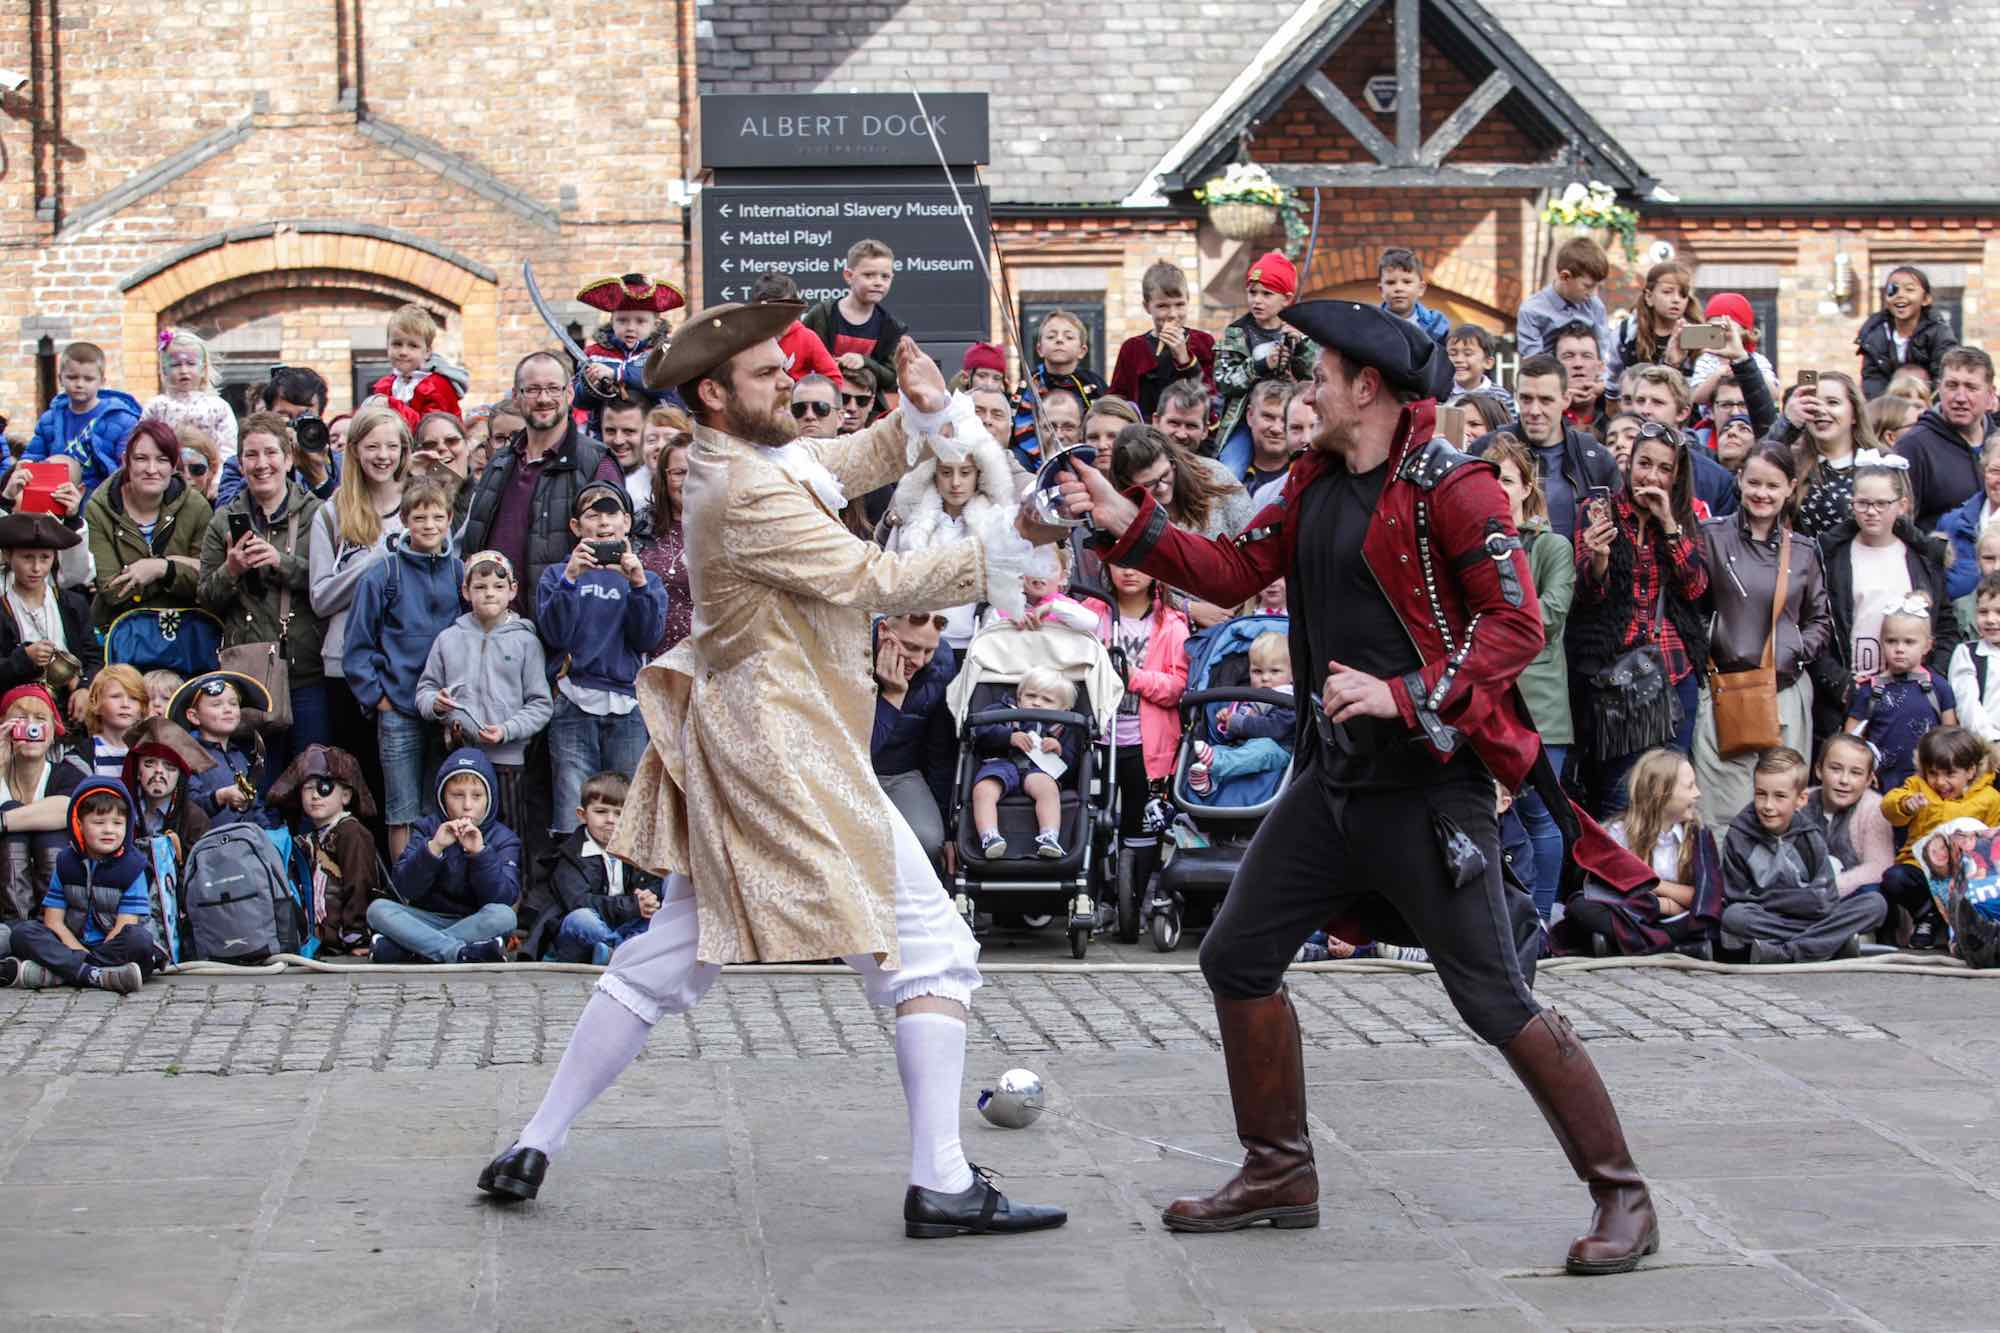 Albert Dock Liverpool launches 2018 event programme - Pirates On The Dock